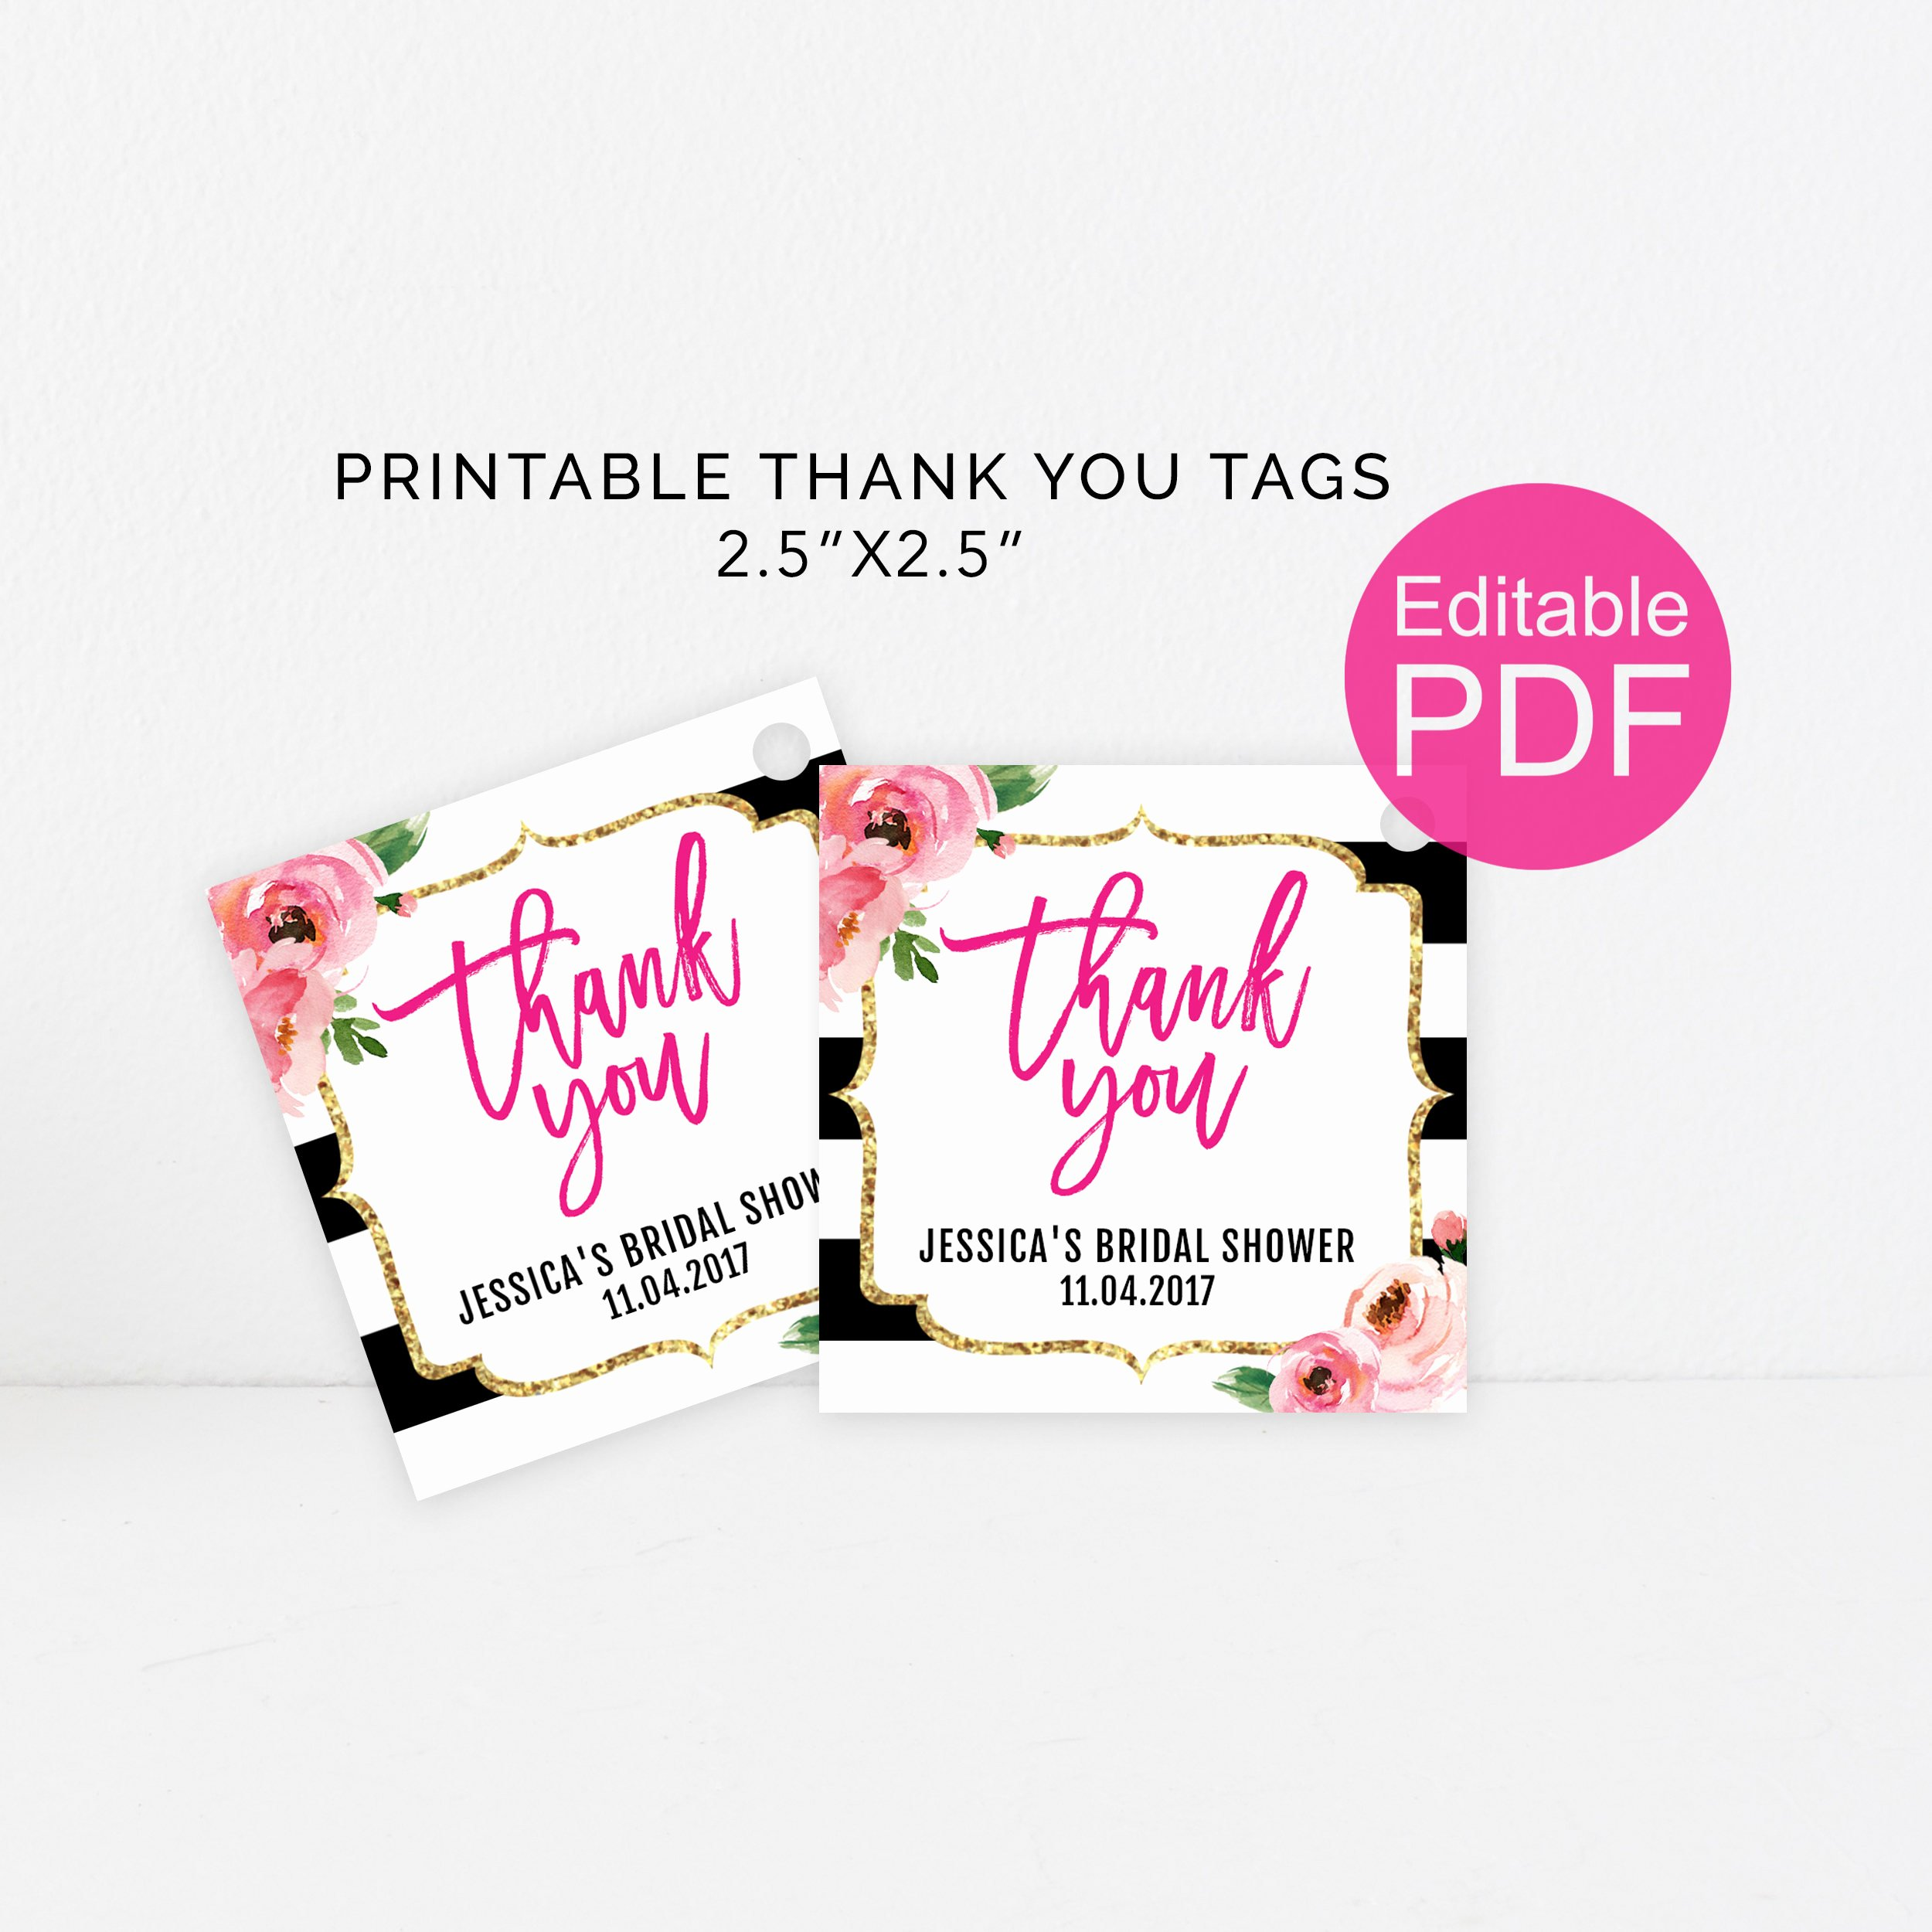 Printable Thank You Tags Lovely Kate Thank You Tags Template Diy Floral Thank You Tag Kate